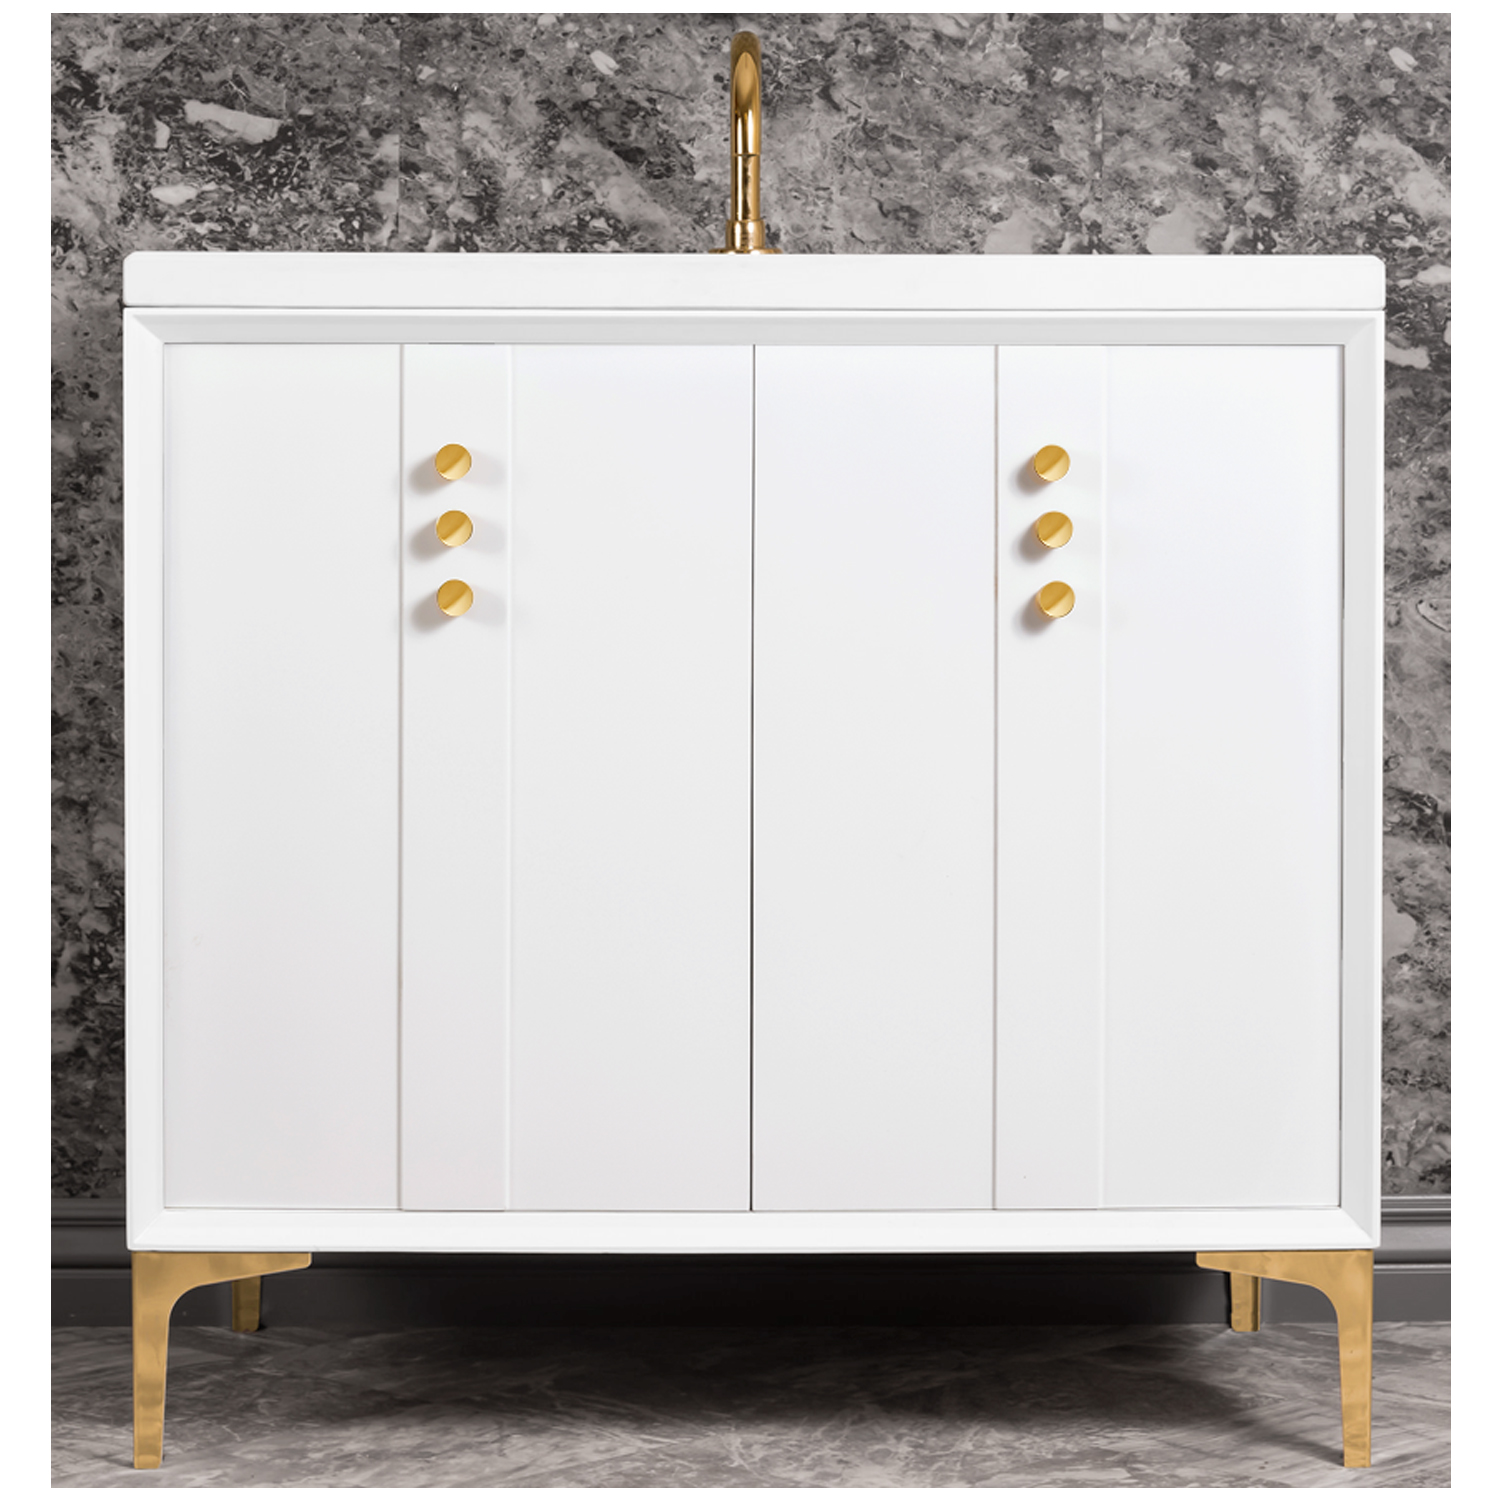 "VAN36W-009   36"" White Tuxedo with Buttons - Shown with PB (Polished Brass Finish)"